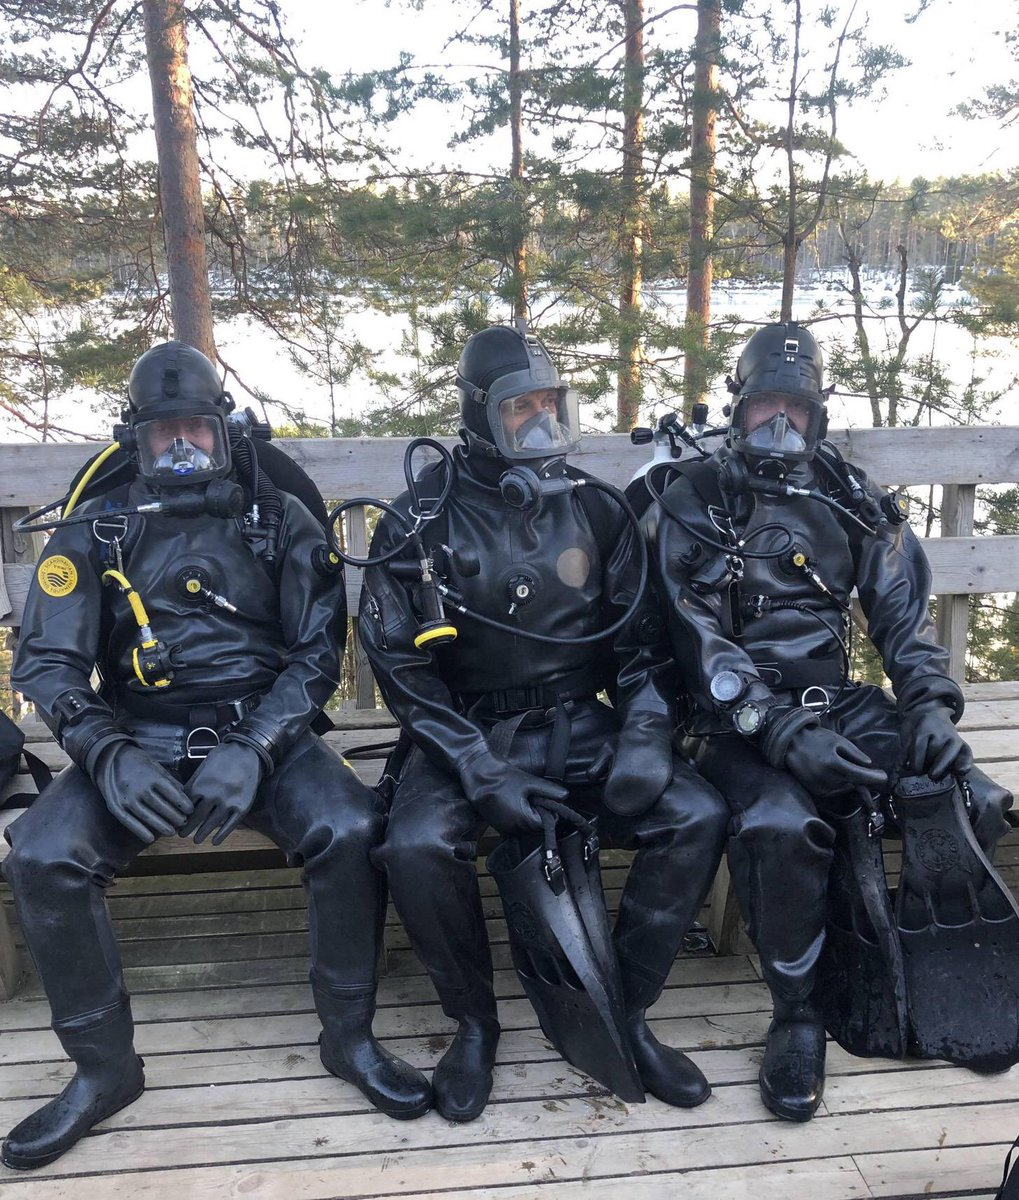 Me and my buddies getting kitted out for some ice diving. #loitokari #vikingdrysuit #interspiro #oceantechnologysystems #icediving